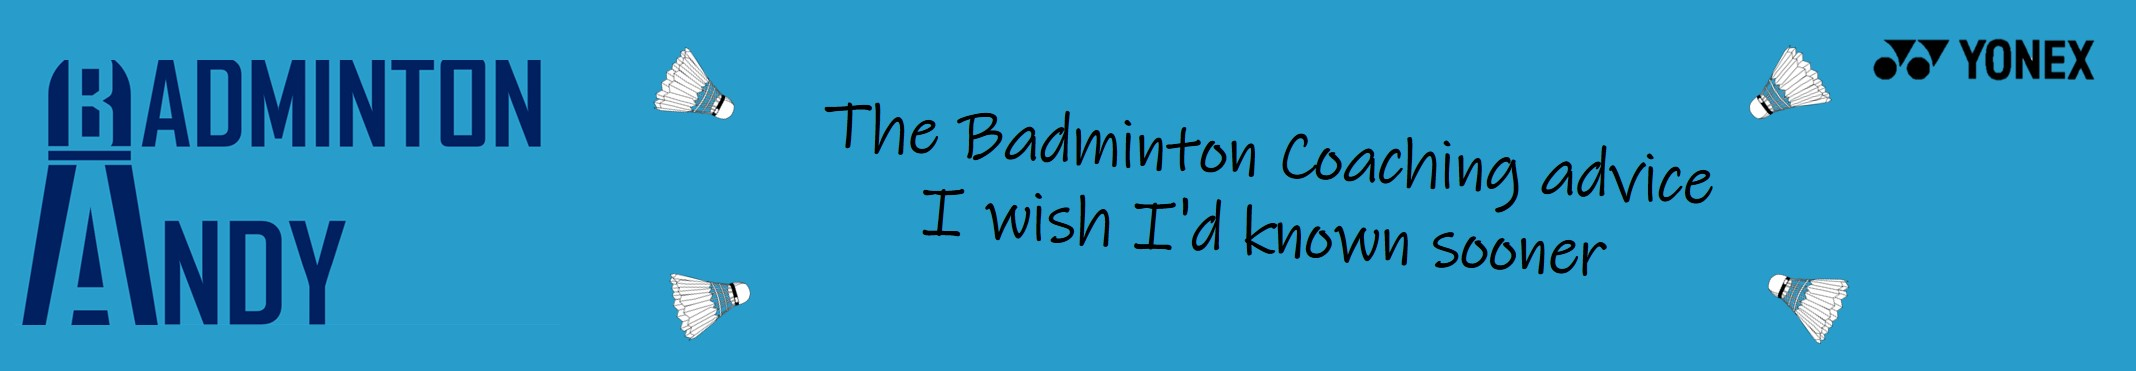 Badminton Andy